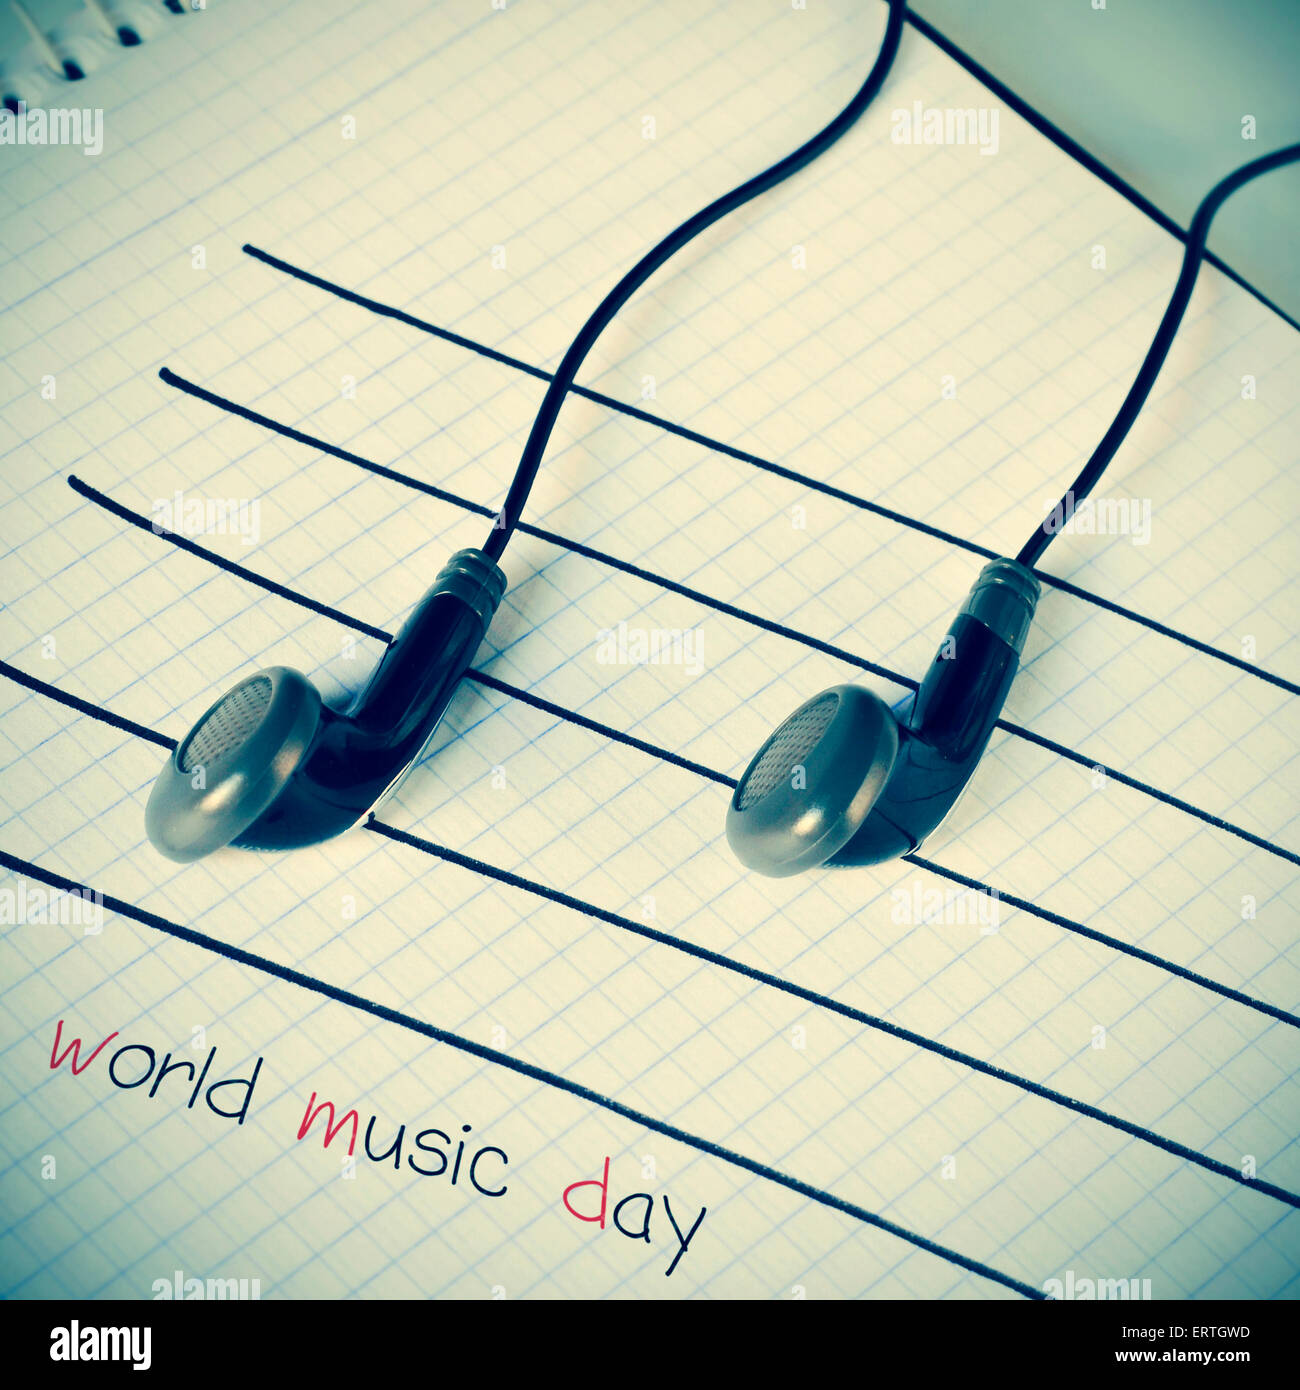 a pair of earphones placed on a staff drawn on a notepad simulating musical notes, and the text world music day - Stock Image